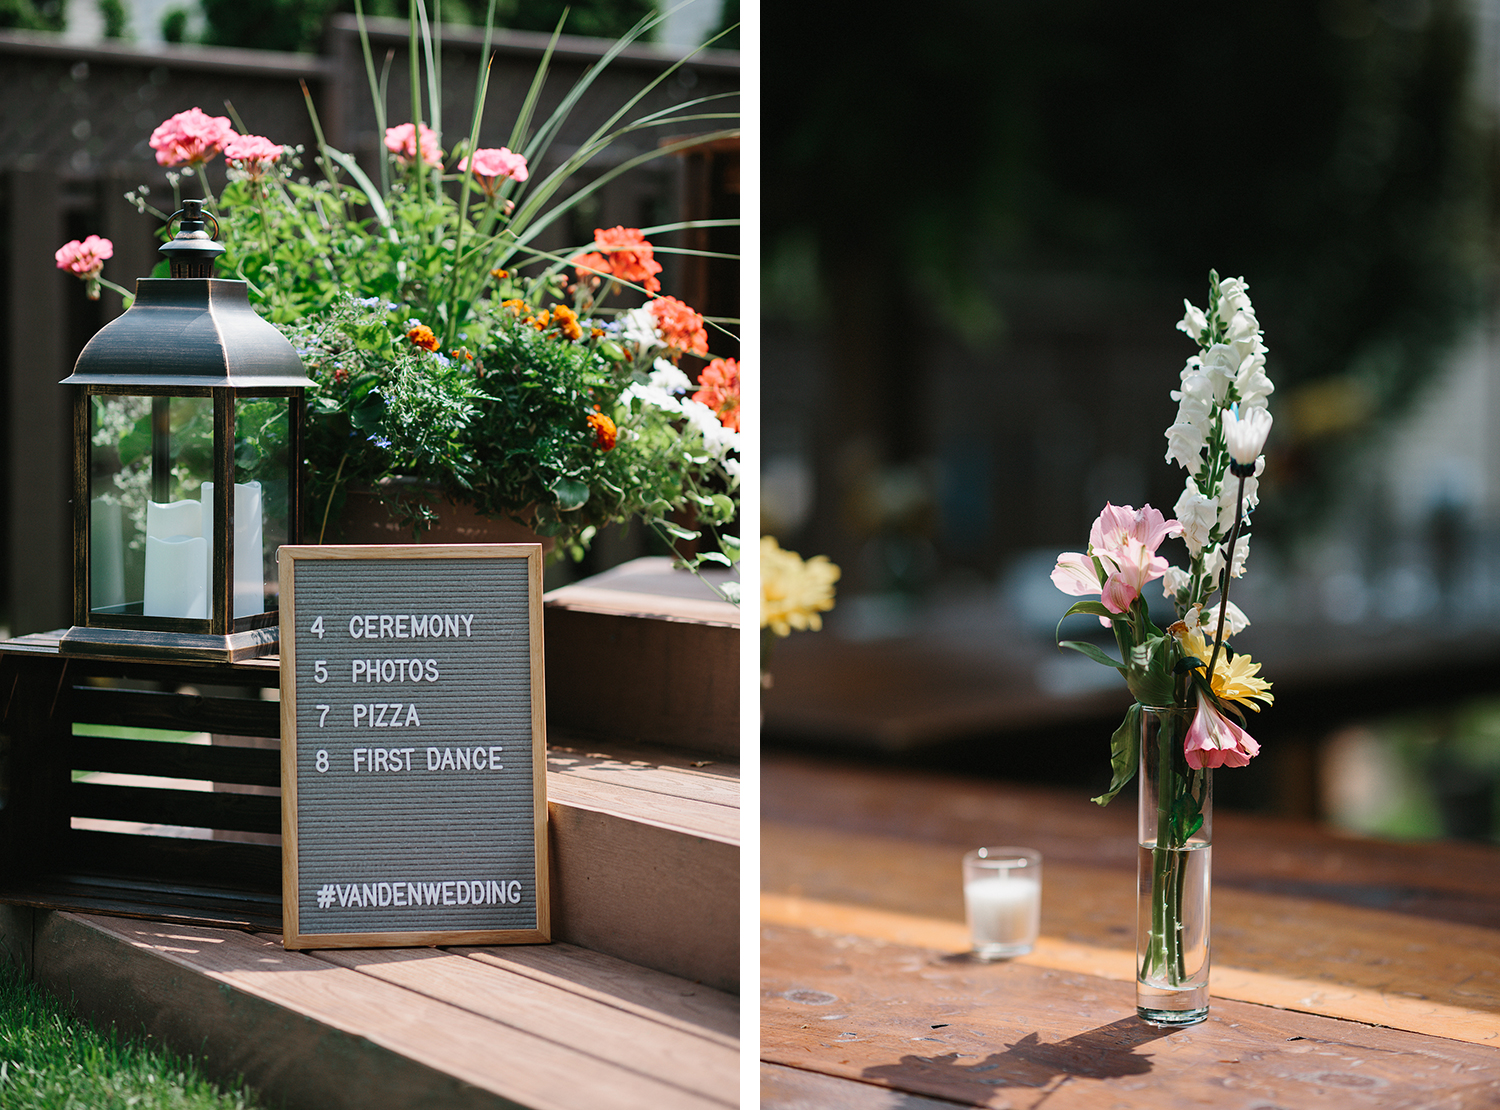 2-Backyard-family-intimate-cottage-wedding-chatum-kent-toronto-ontario-film-photographer-ryanne-hollies-photography-diy-string-lights-ceremony-space-flowers-and-wooden-tables.jpg